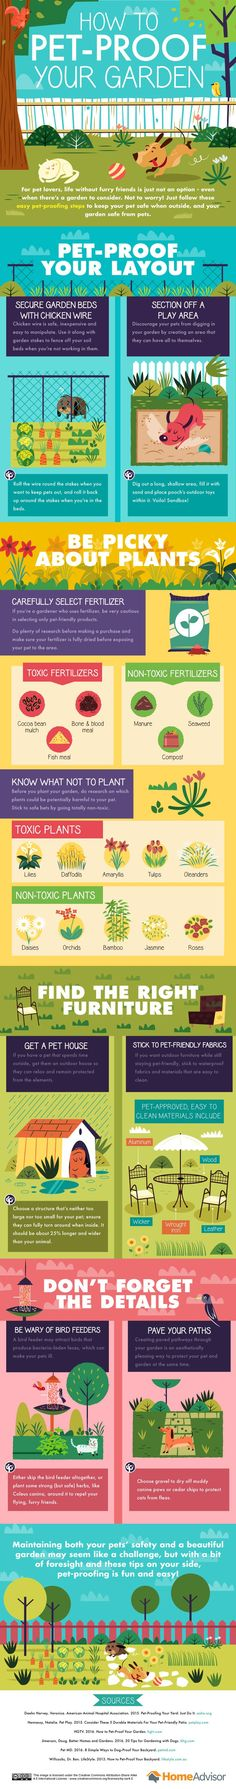 HomeAdvisor created this great infographic describing how to pet proof your backyard. Take into consideration fencing areas, common areas, and organic fertilizers to protect the garden and also your pets. Knowing which plants to grow in your yard will also help you keep your pets safe from illness. Take a look at how you can …